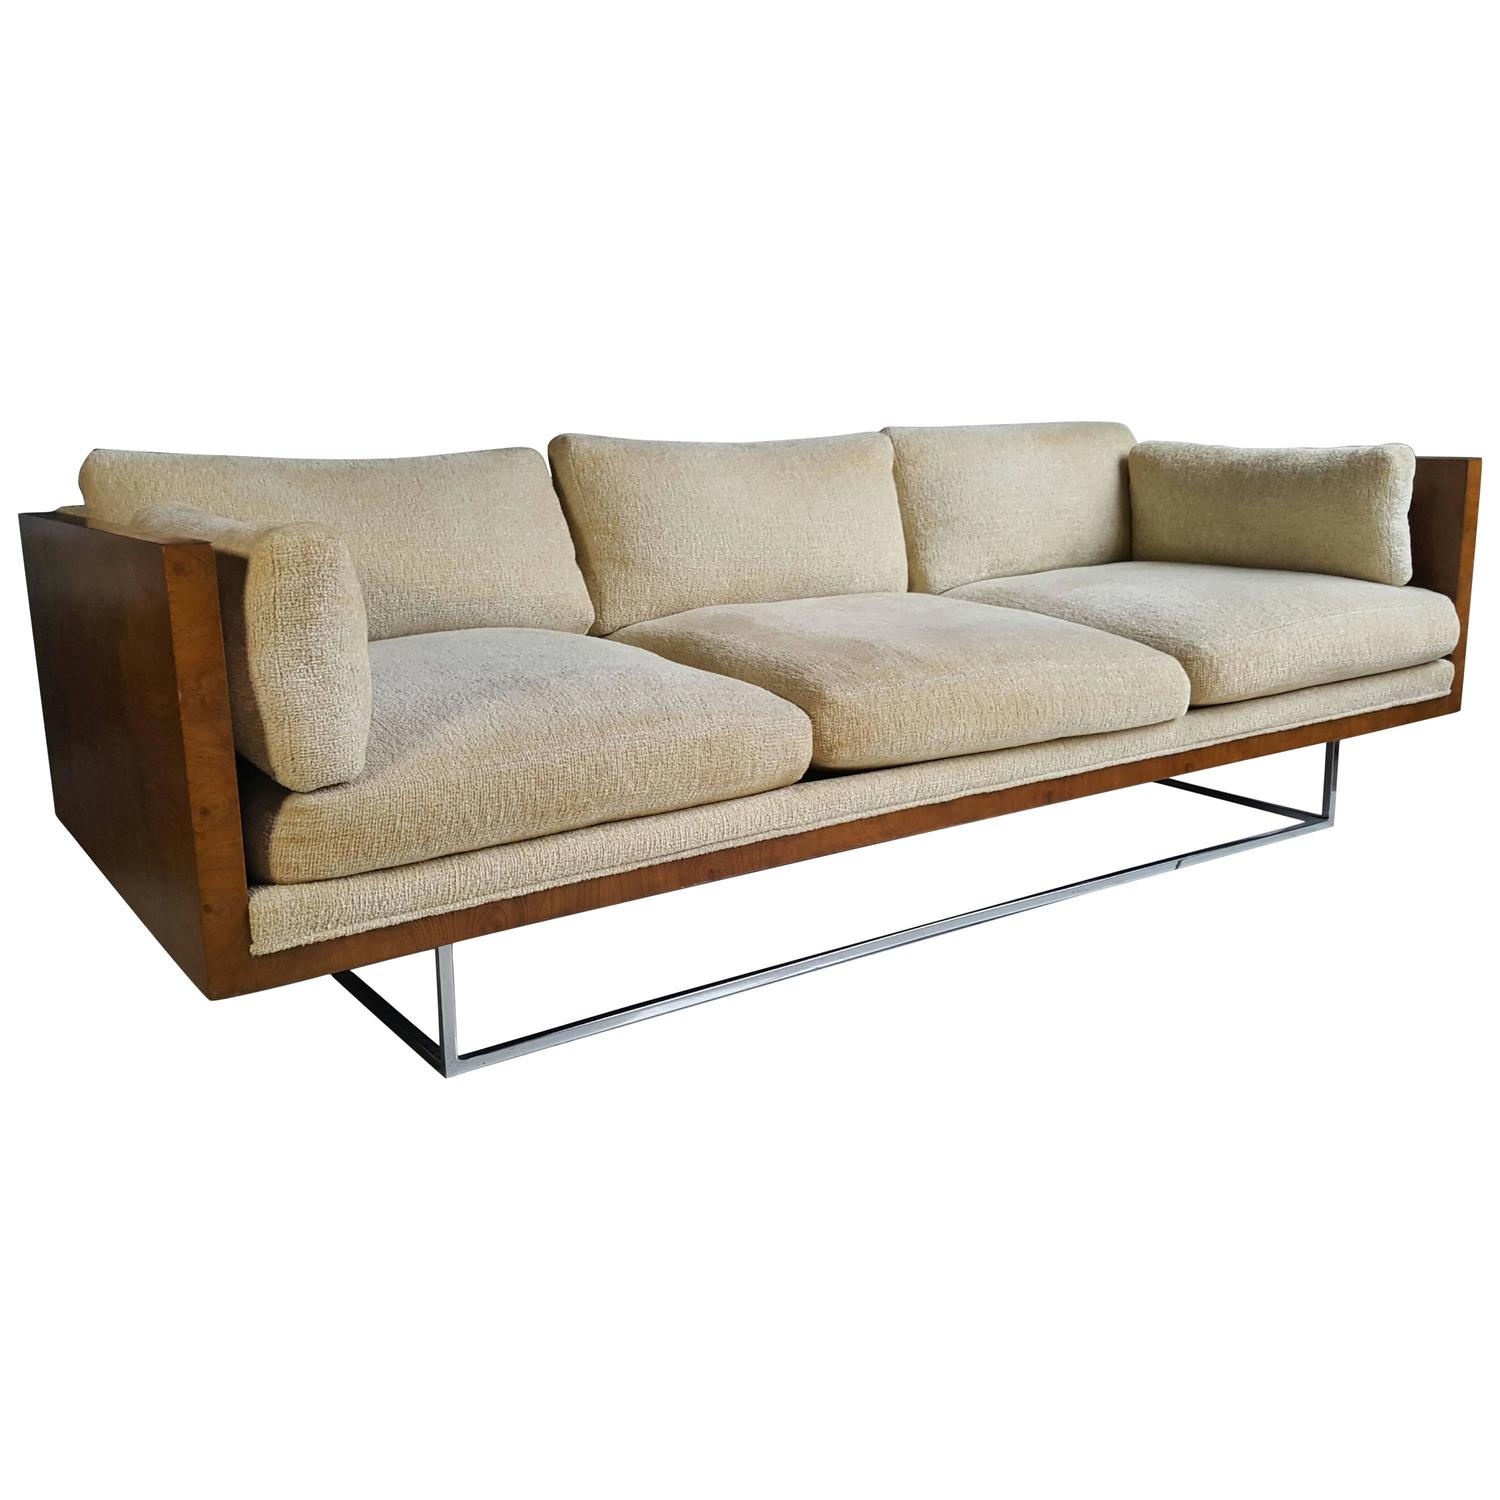 stunning milo baughman floating burl and chrome tuxedo casesofa at 1stdibs